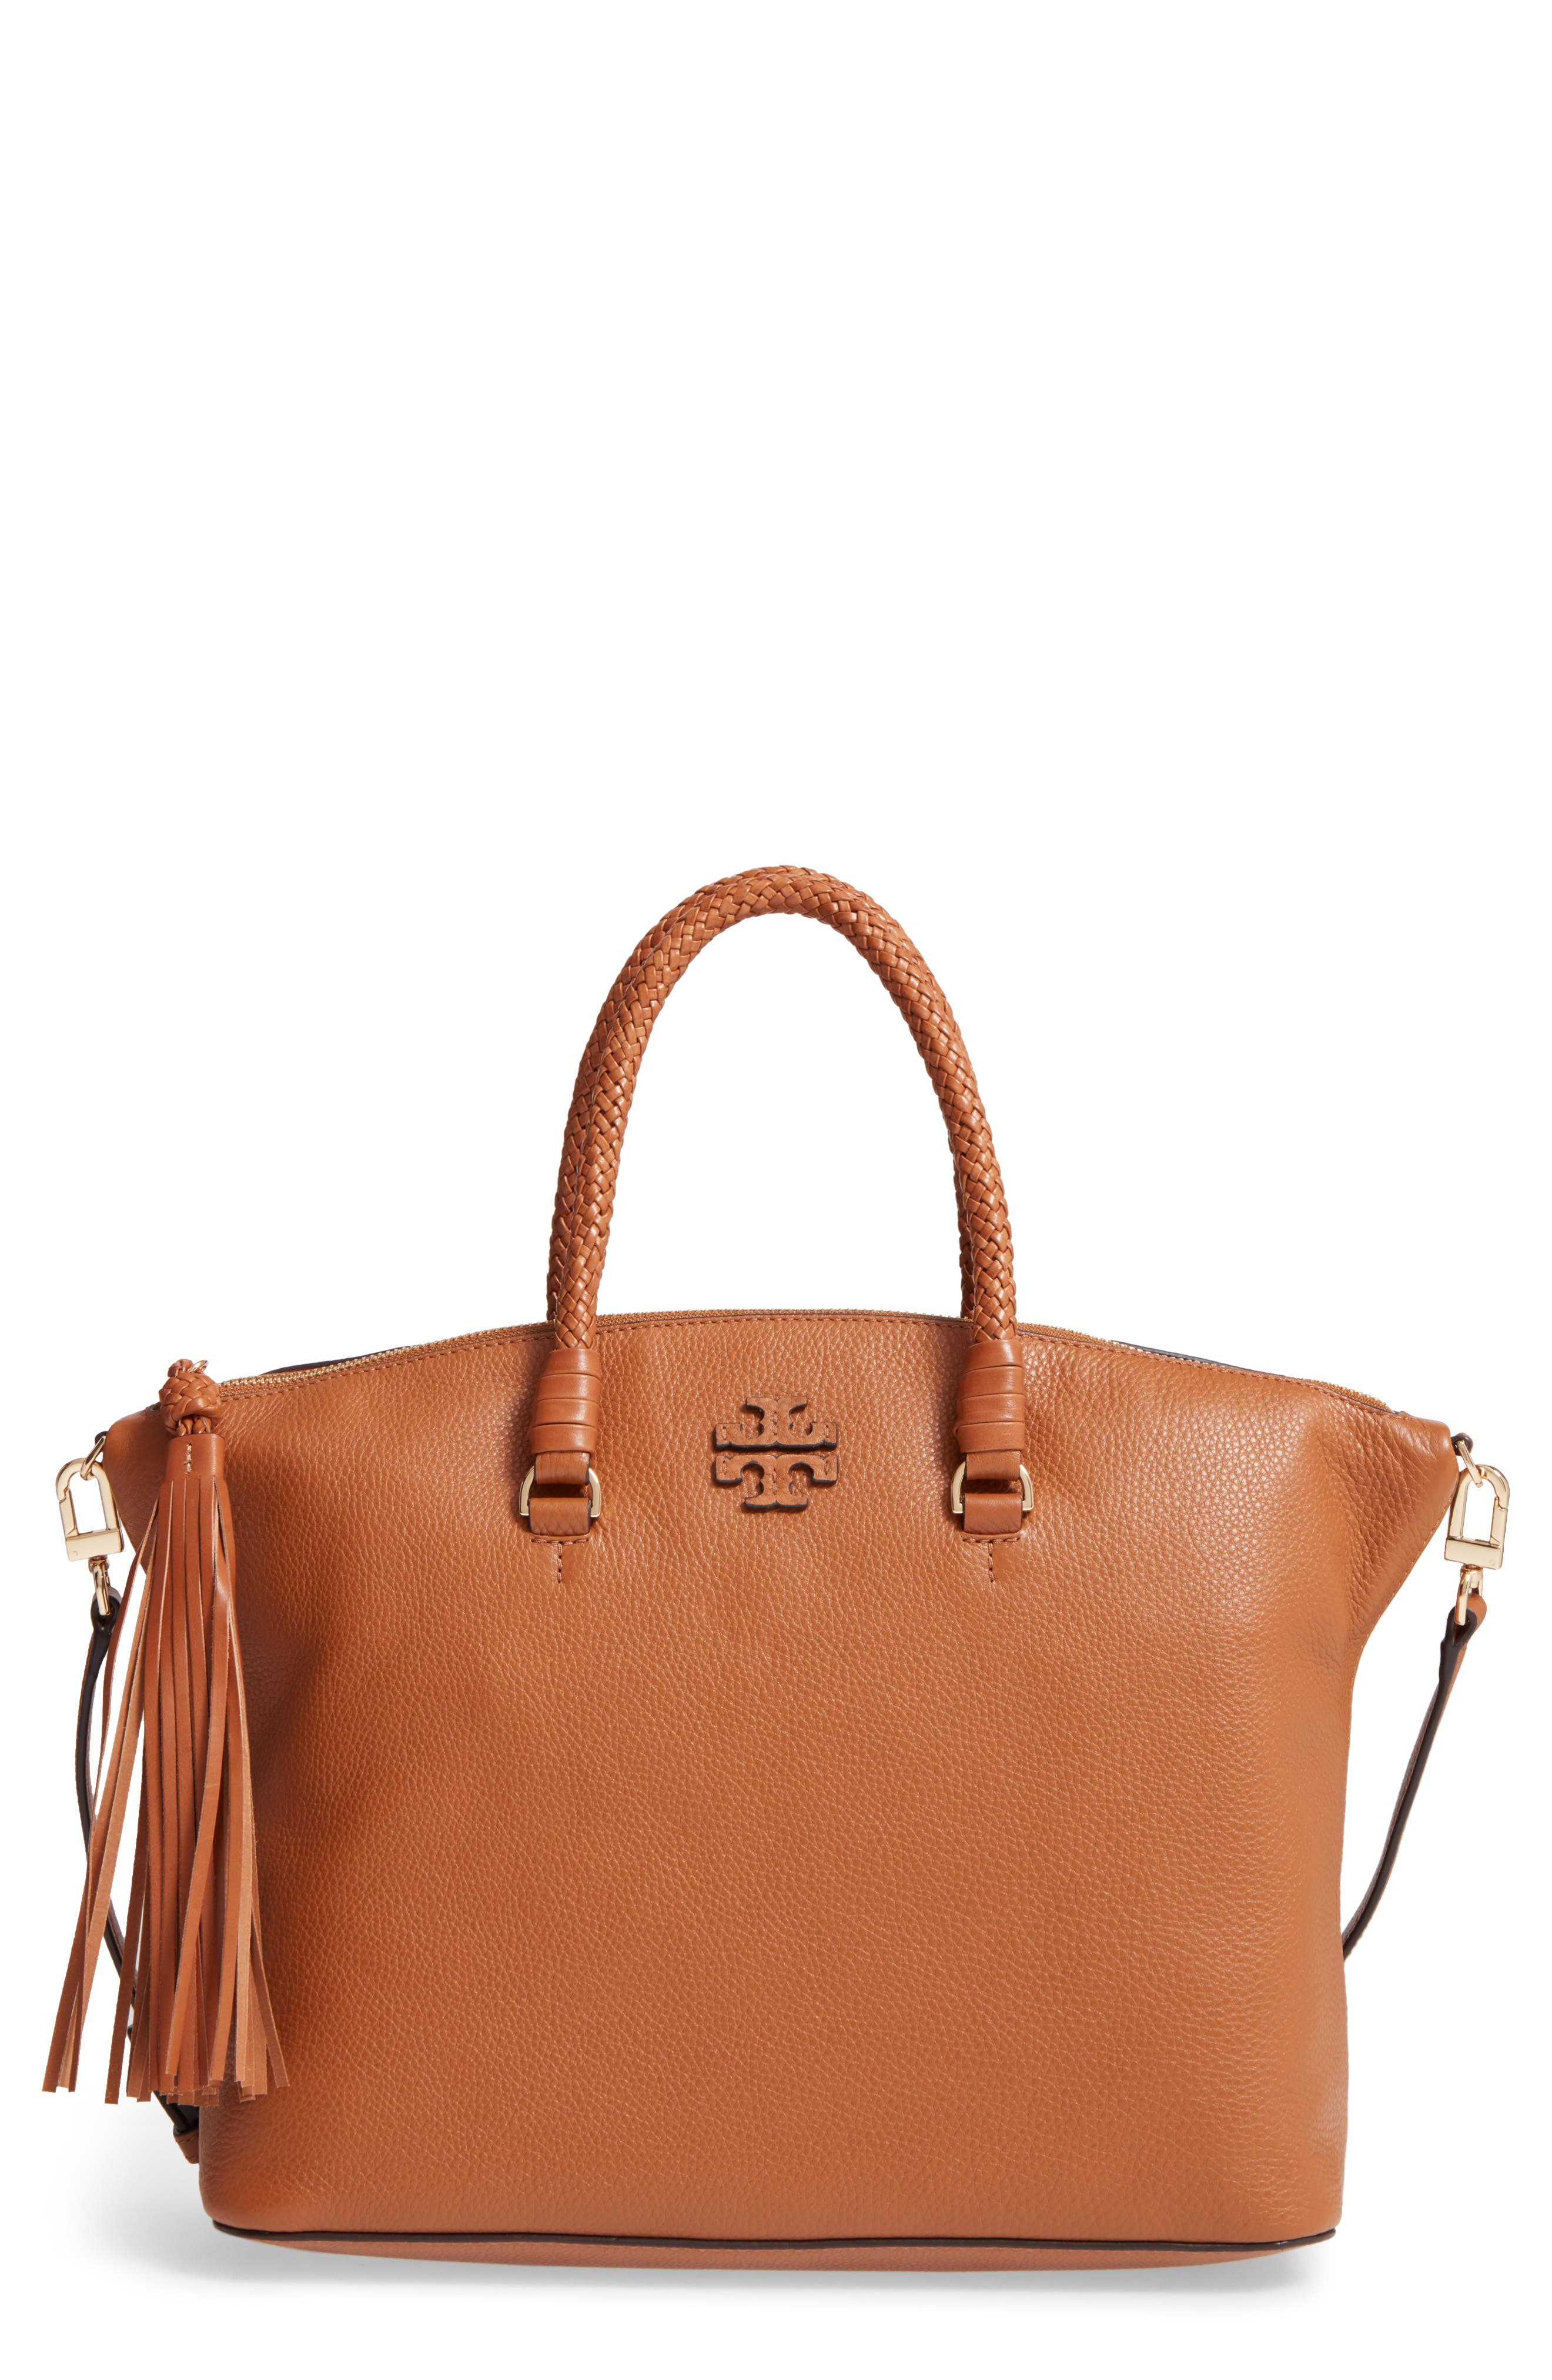 Main Image - Tory Burch Taylor Leather Satchel